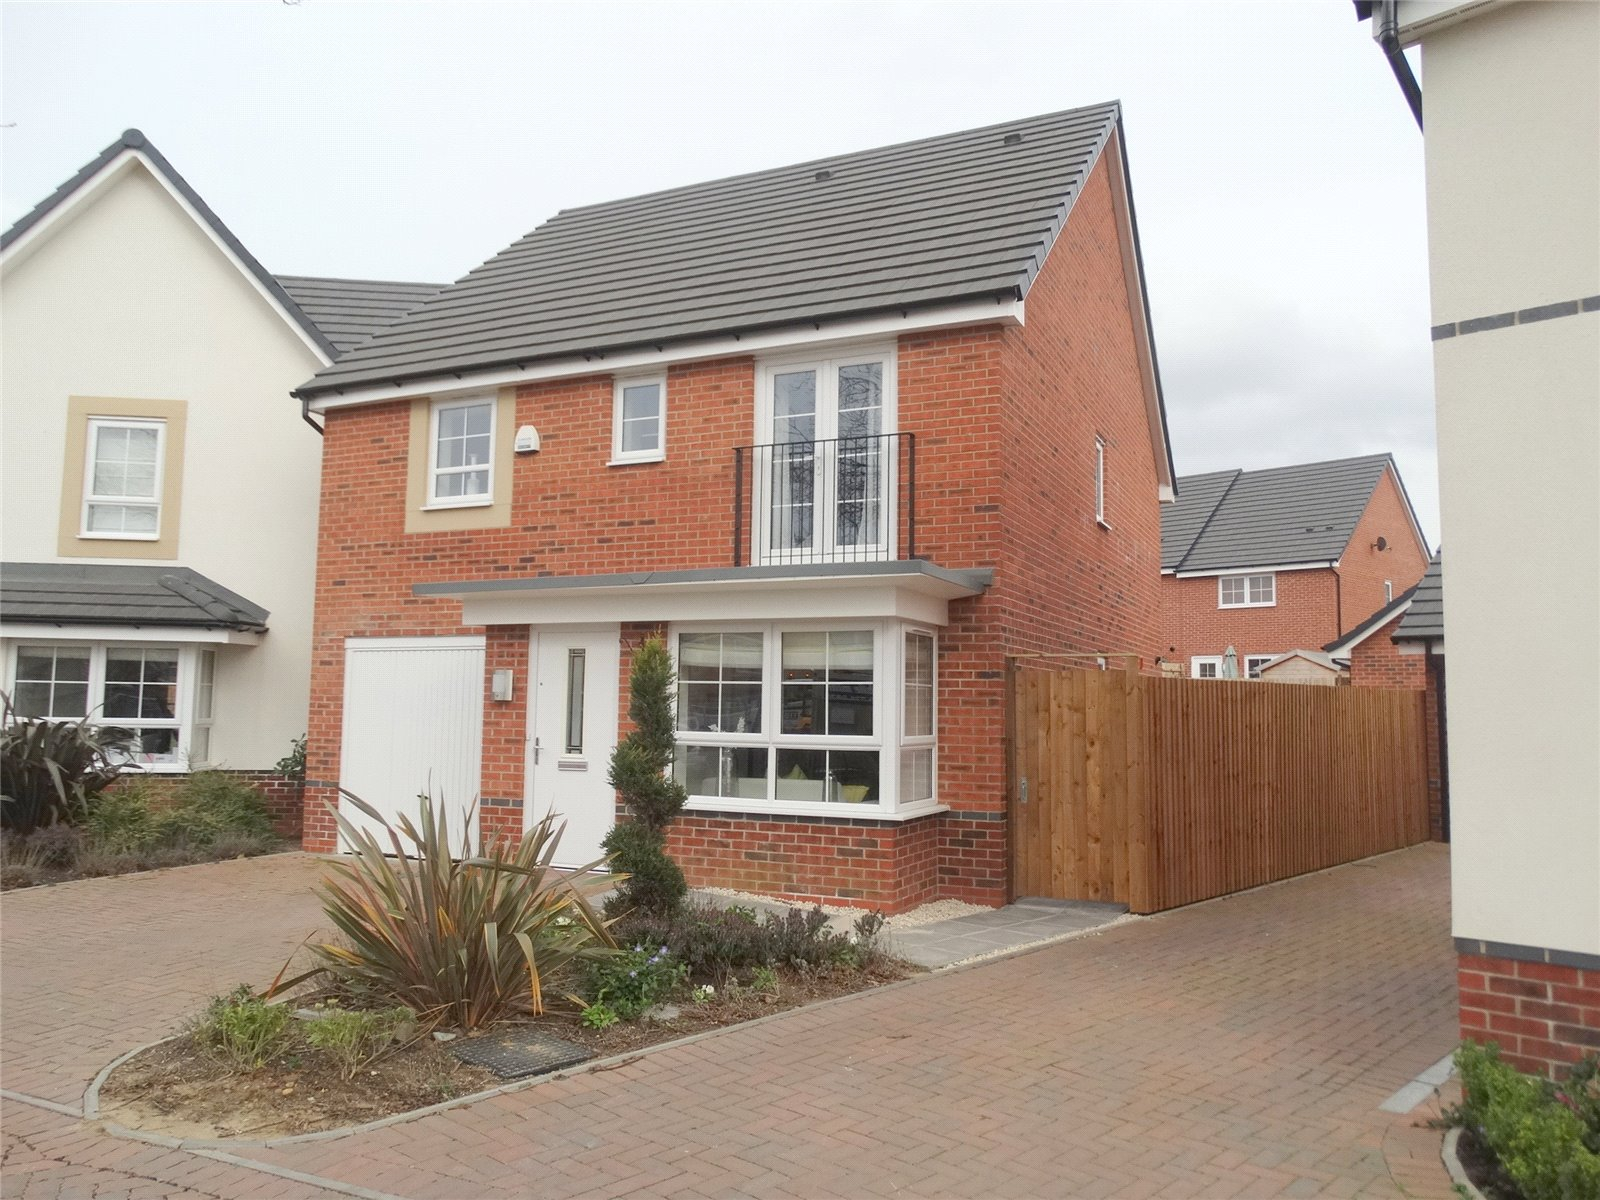 Cj Hole Worcester 4 Bedroom House To Rent In Popert Drive